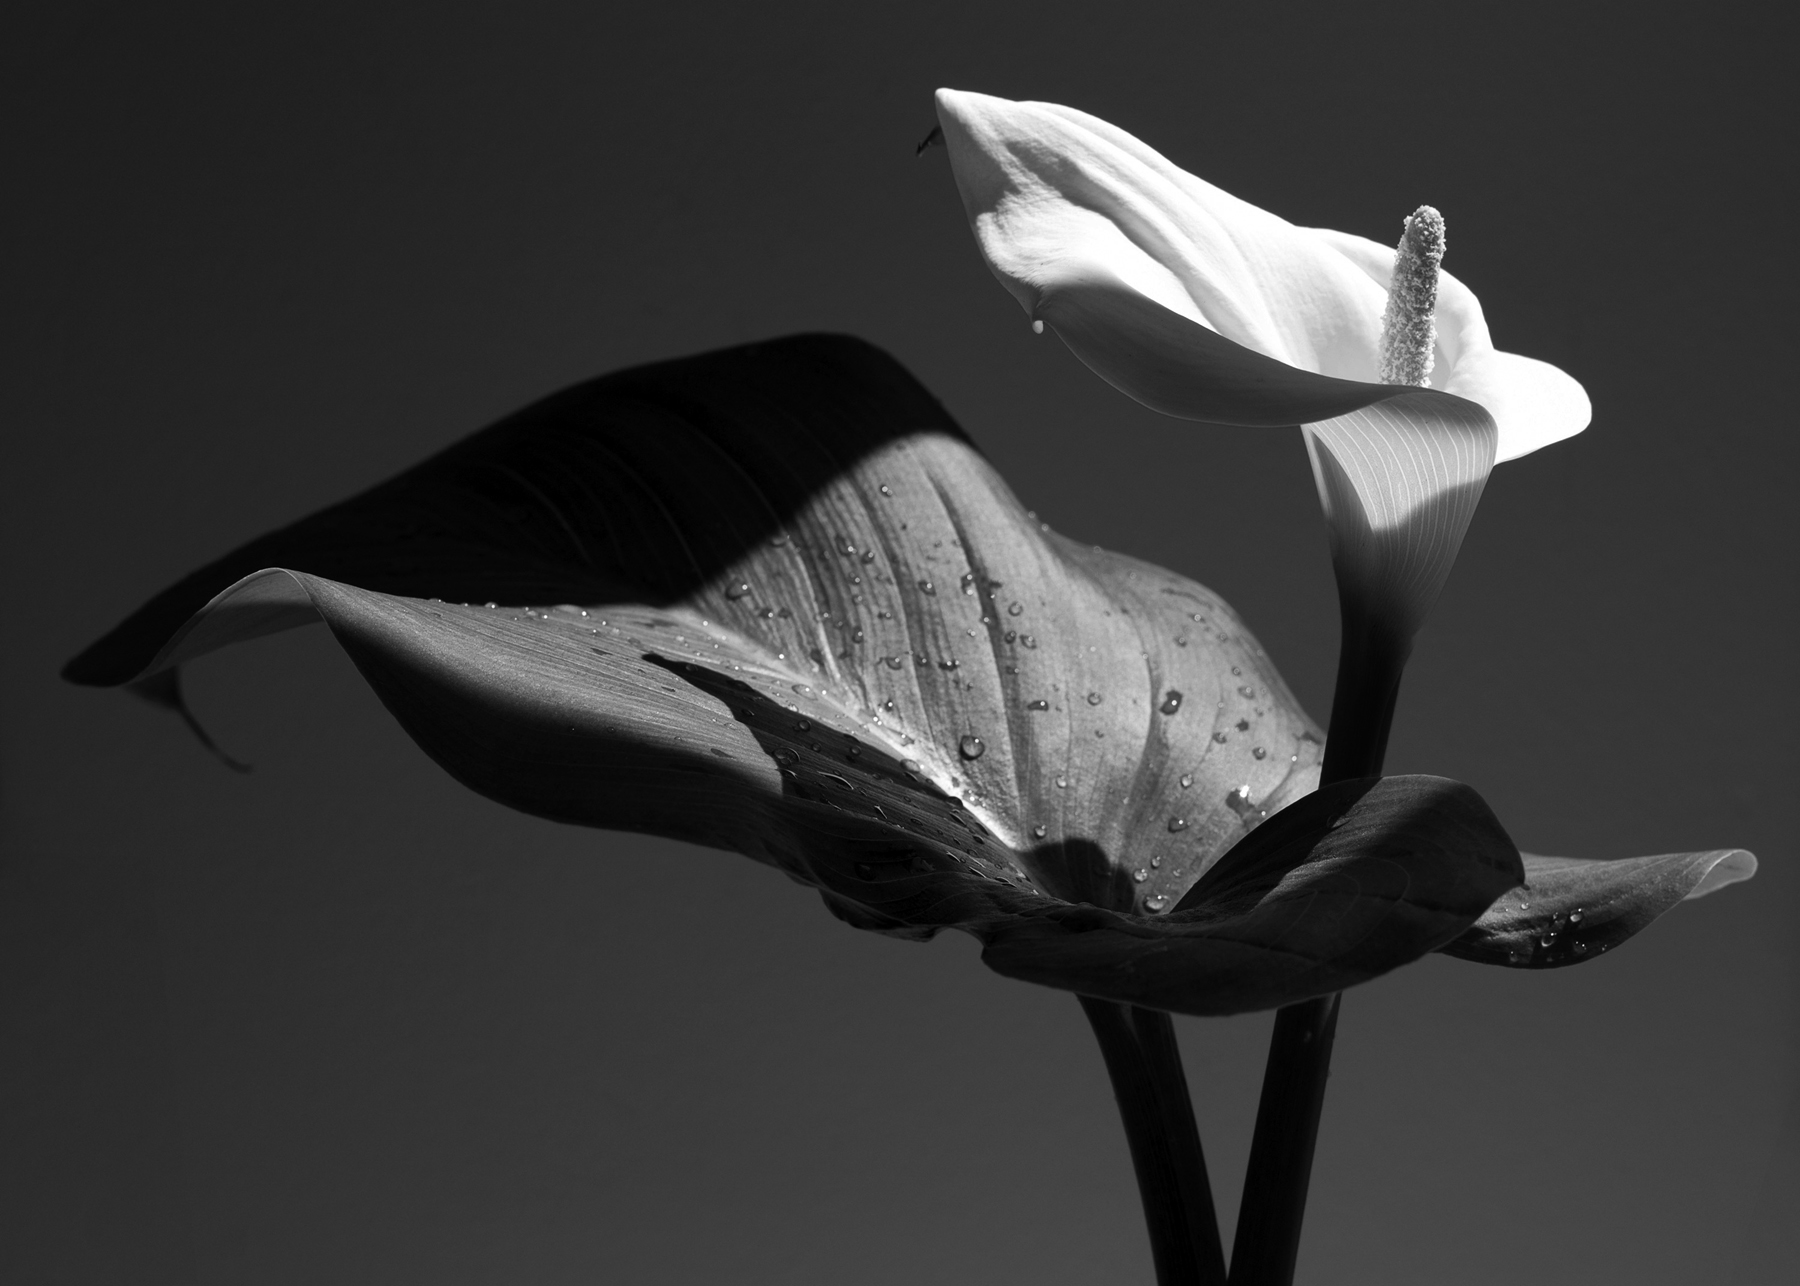 Calla lilly in bloom